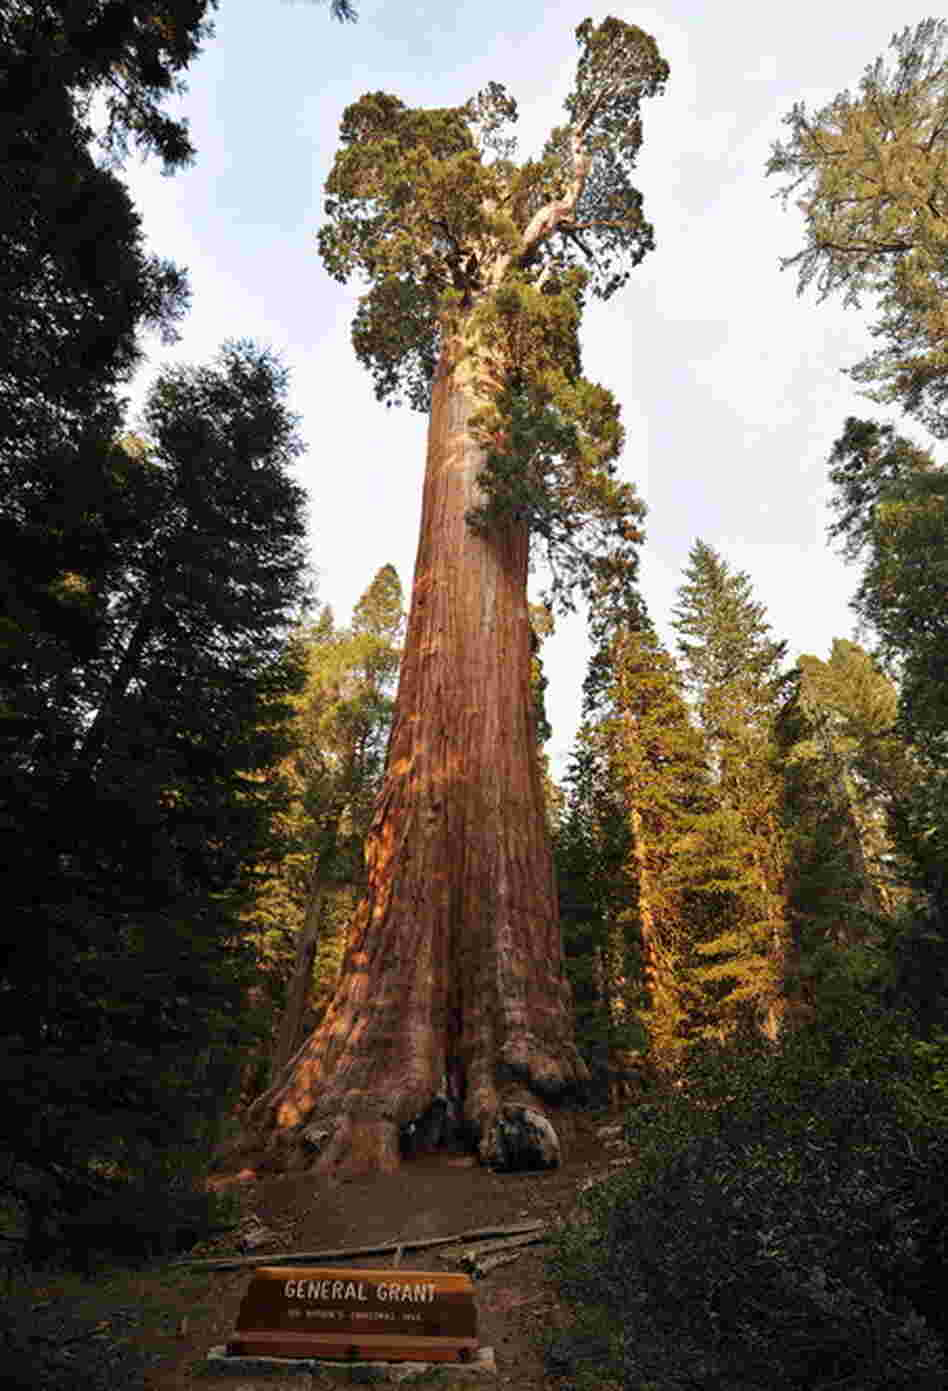 Redwood trees, like the General Grant giant sequoia, native to California's Sierra Nevada, are the world's largest by volume — reaching heights of more than 300 feet. The oldest known giant sequoia based on its ring count is 3,500 years old.